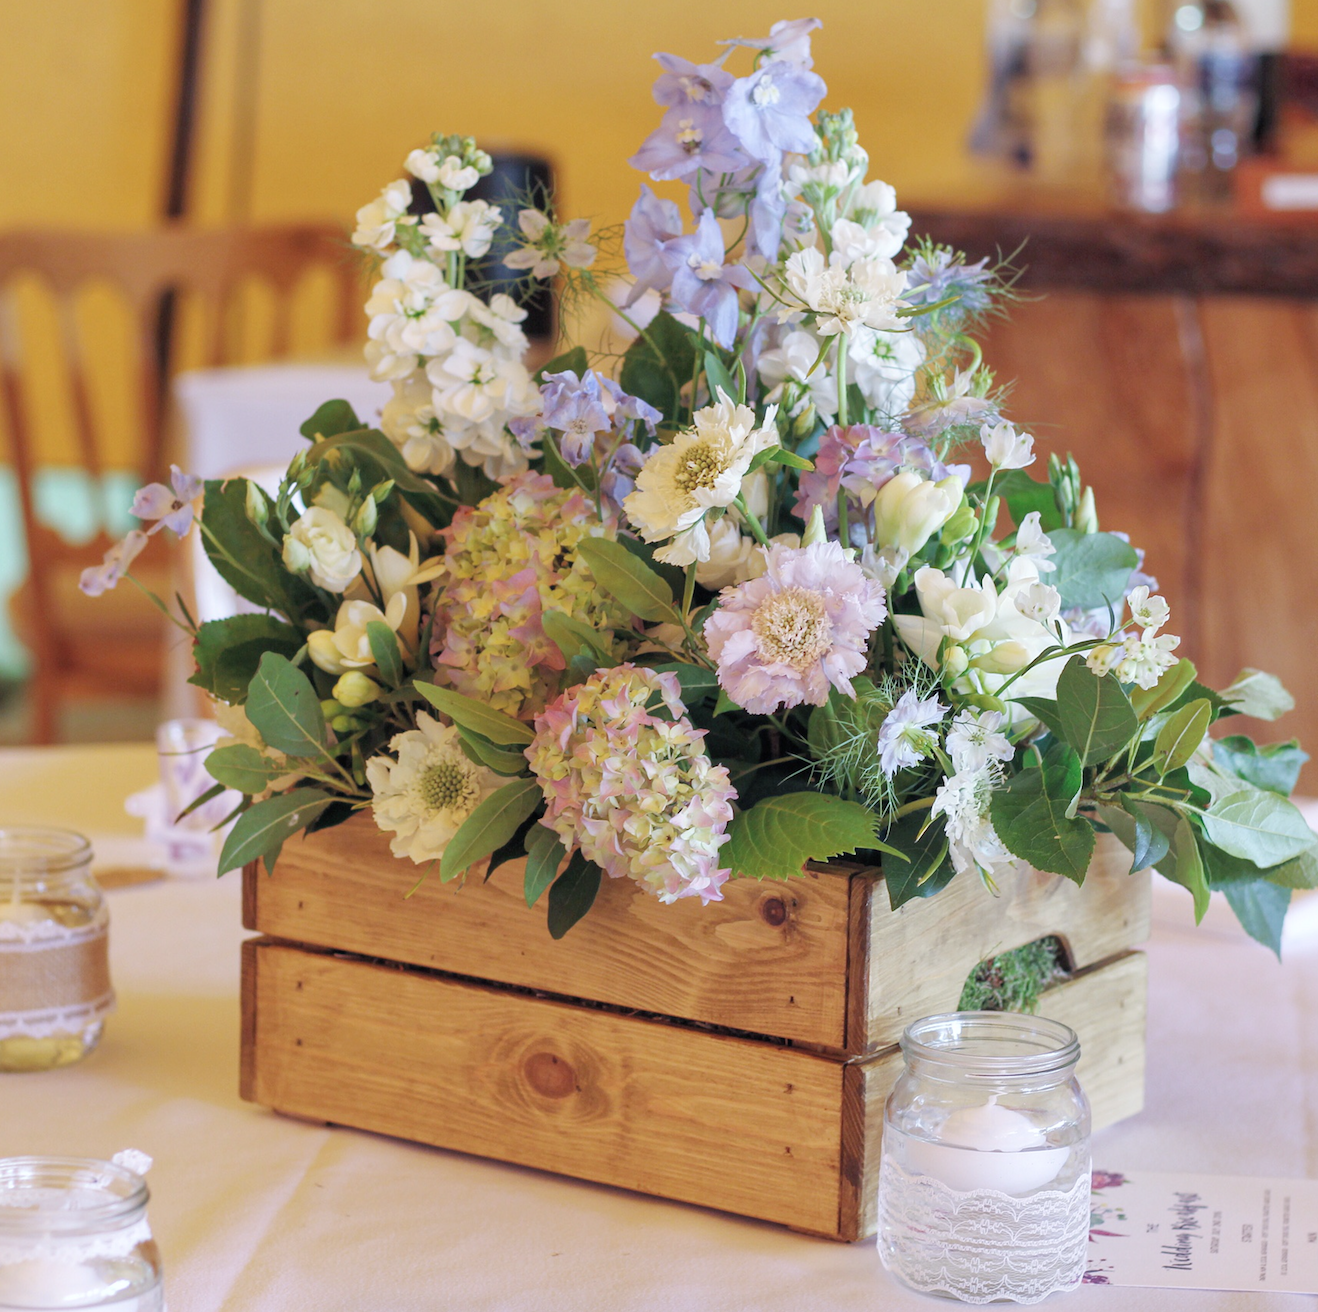 White and blue wedding at chafford park kent countryside wedding